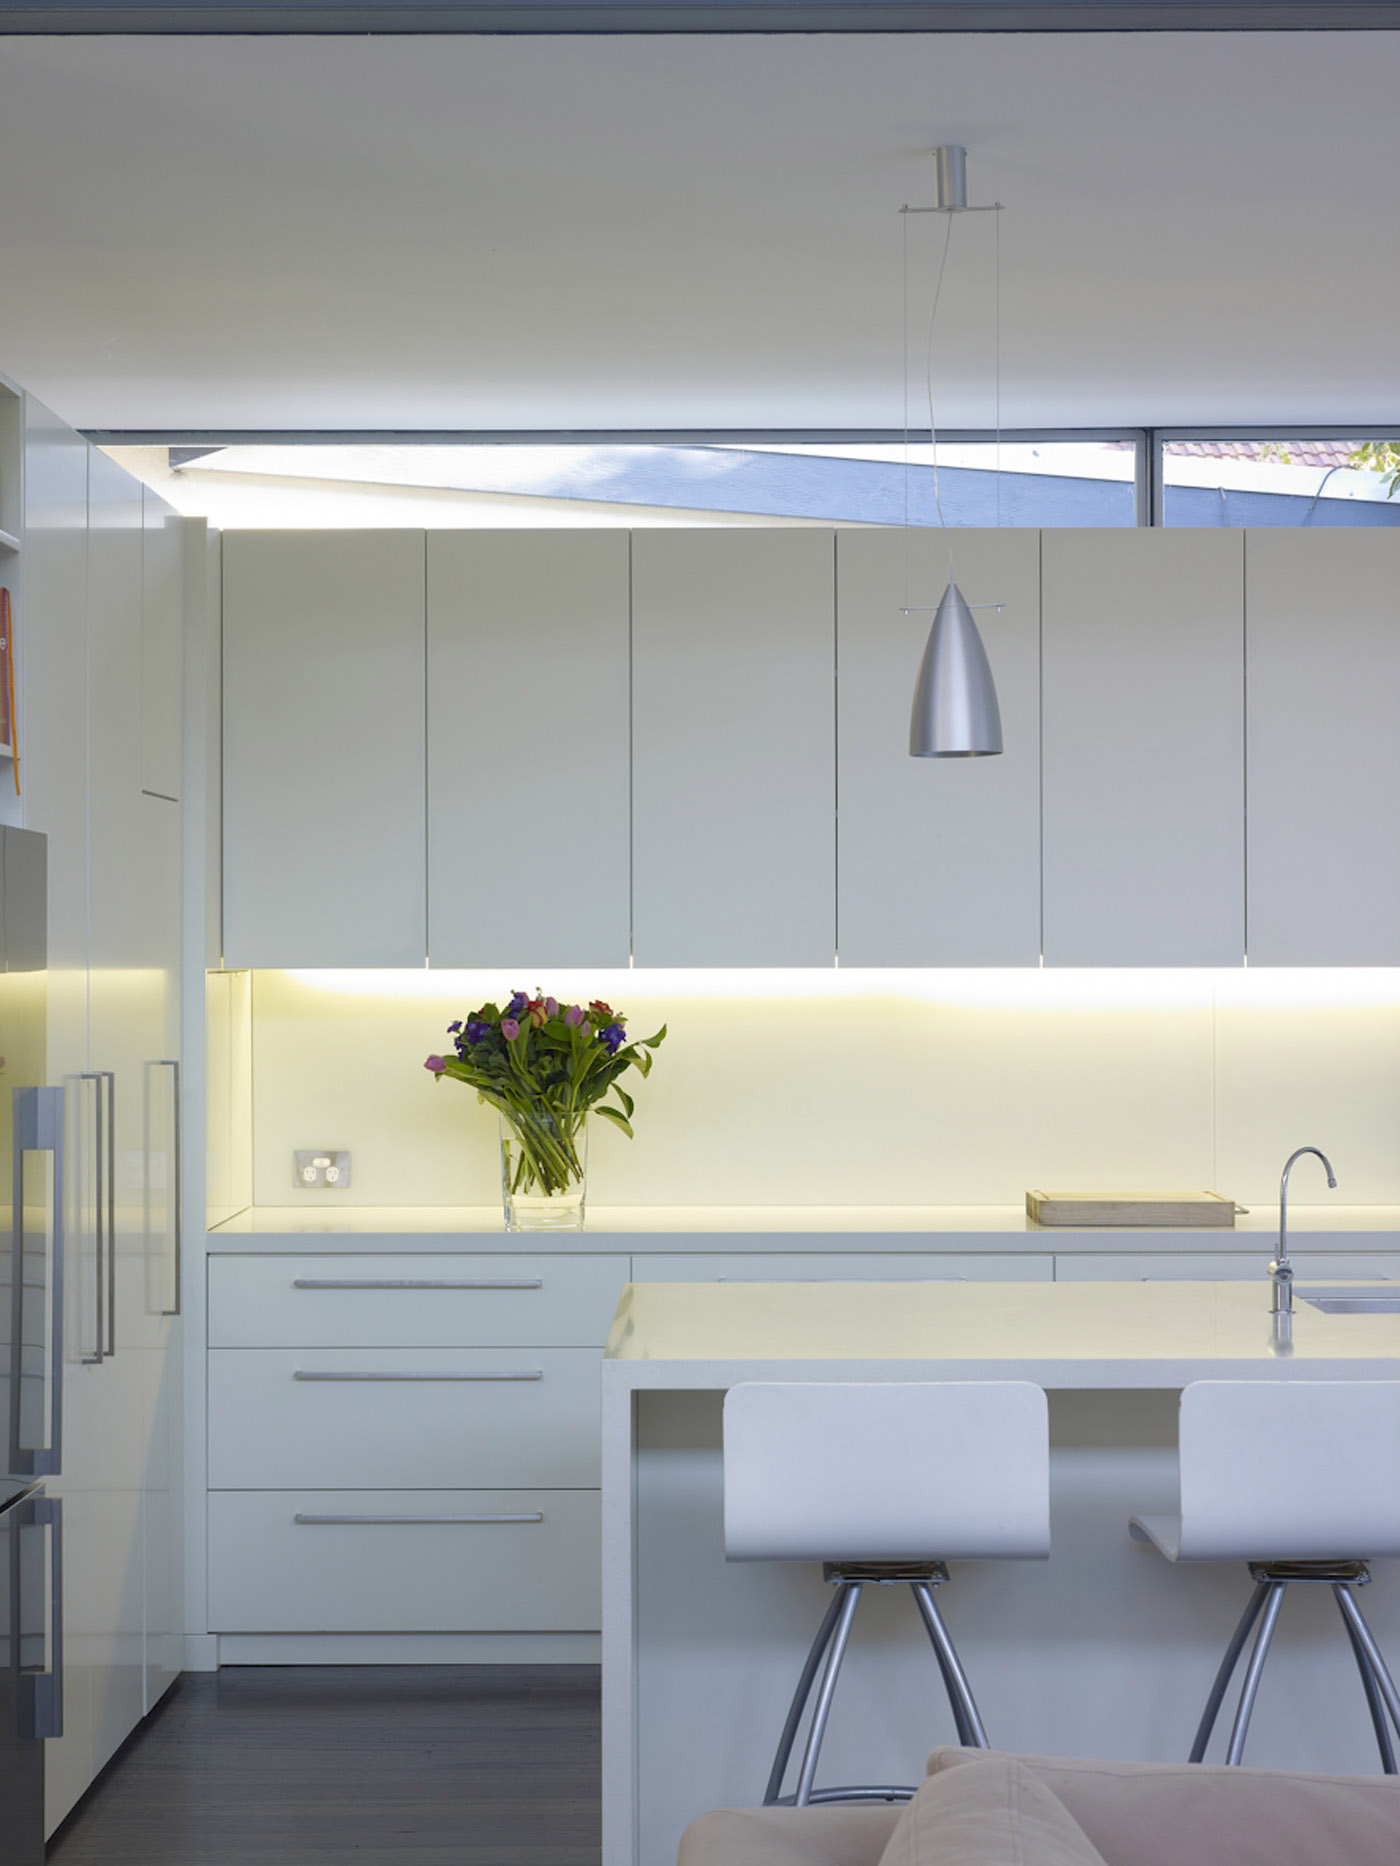 Lambert House by Sydney award winning residential architecture office Sam Crawford Architects. Minimal white kitchen joinery.